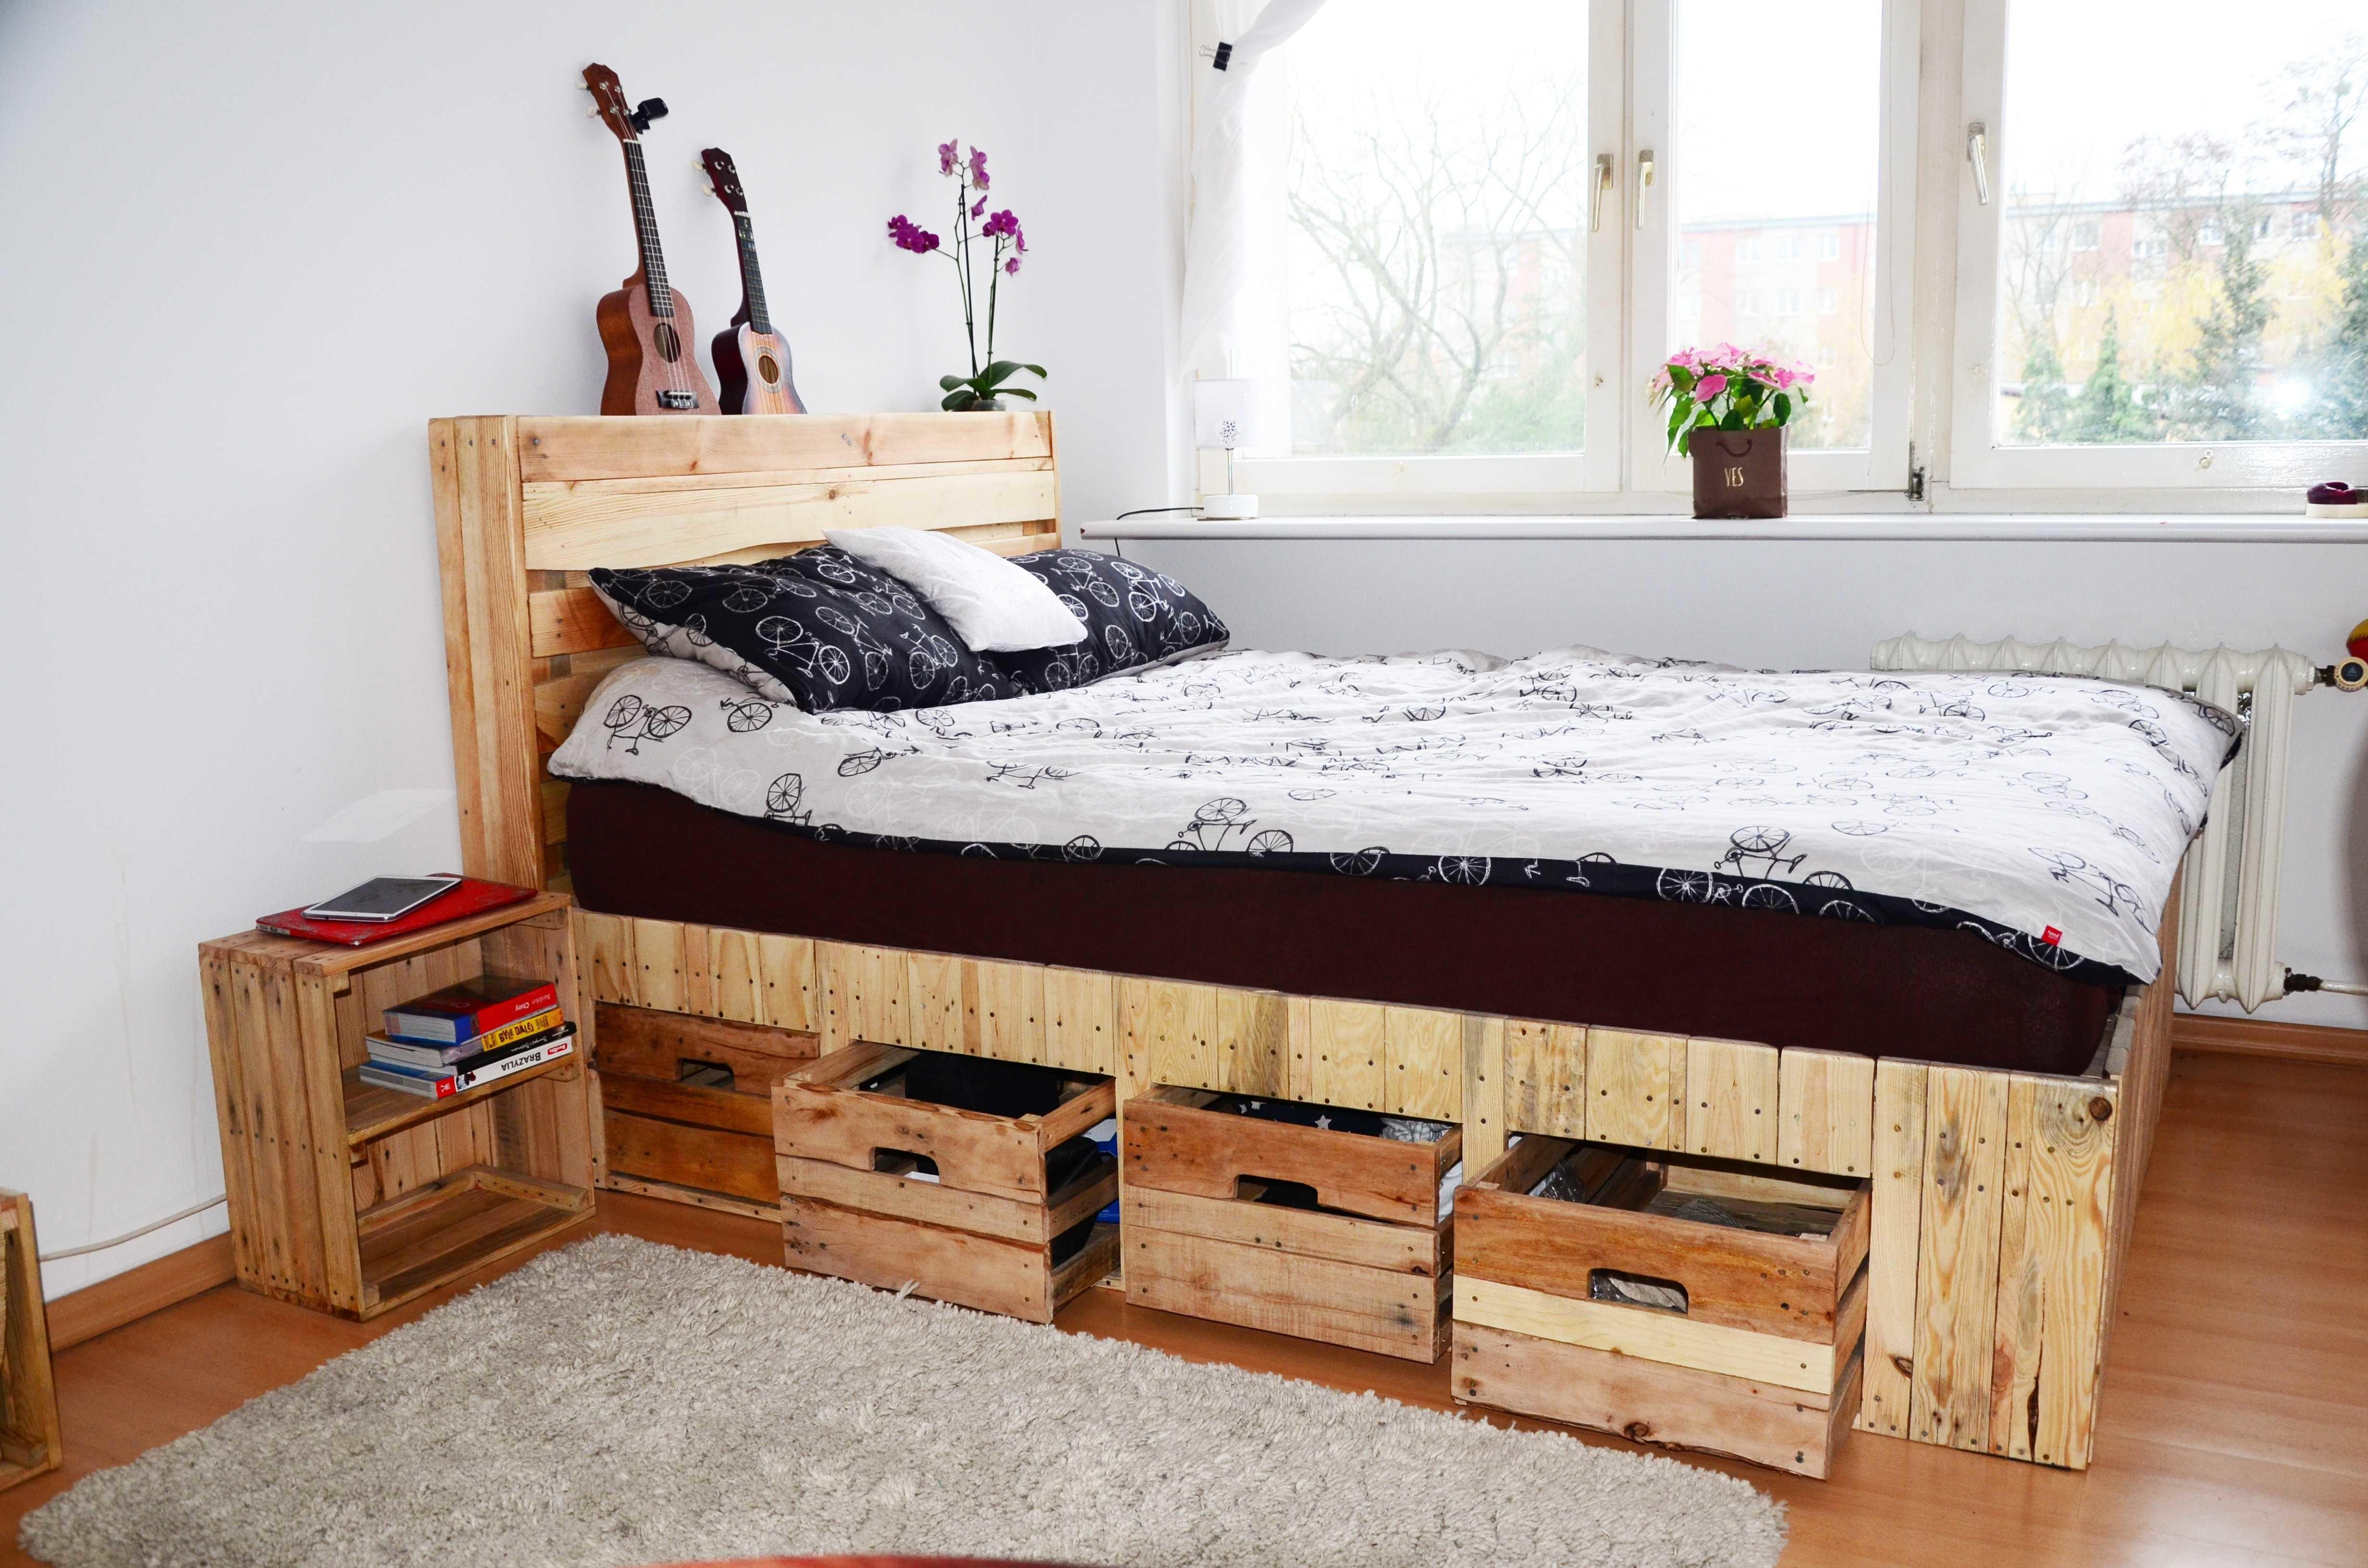 Top Diy Pallet Bed Projects Elly Blog